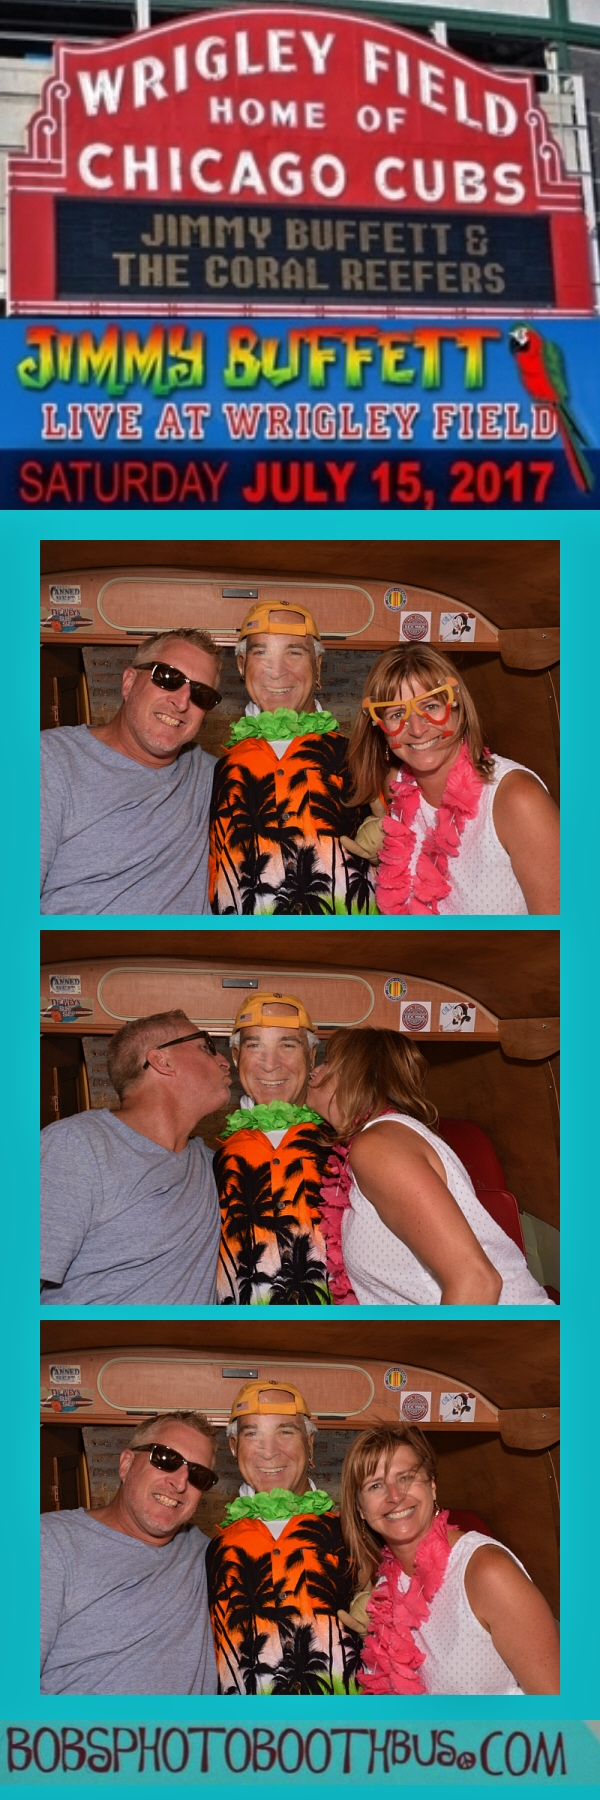 Jimmy Buffett final photo strip graphic_34.jpg